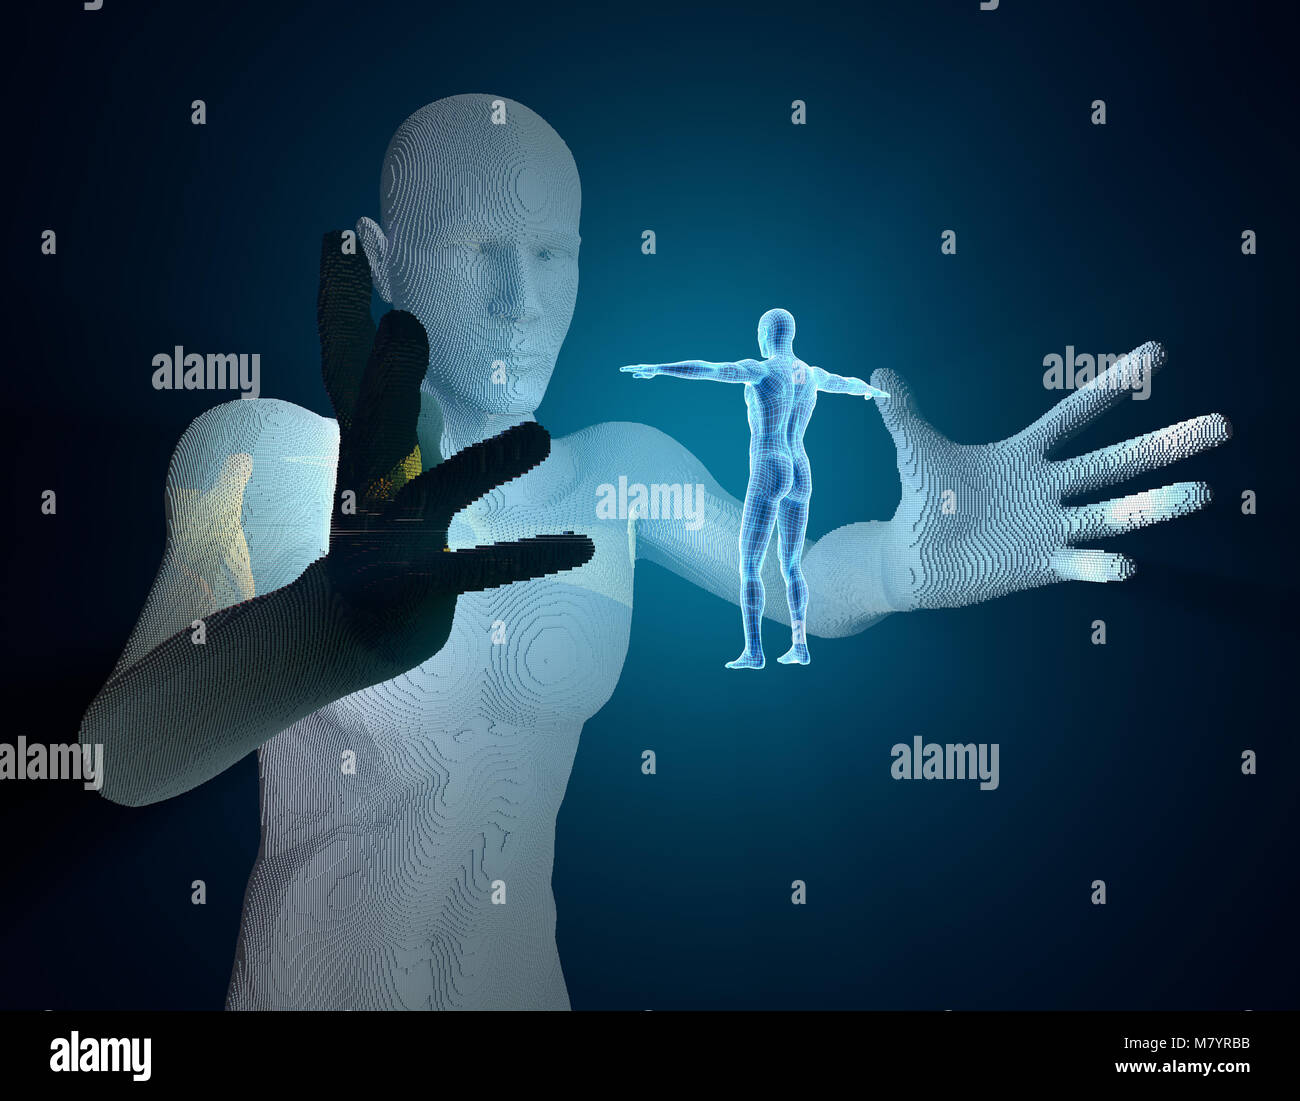 Future human science and technology, exploring the future, human models Stock Photo